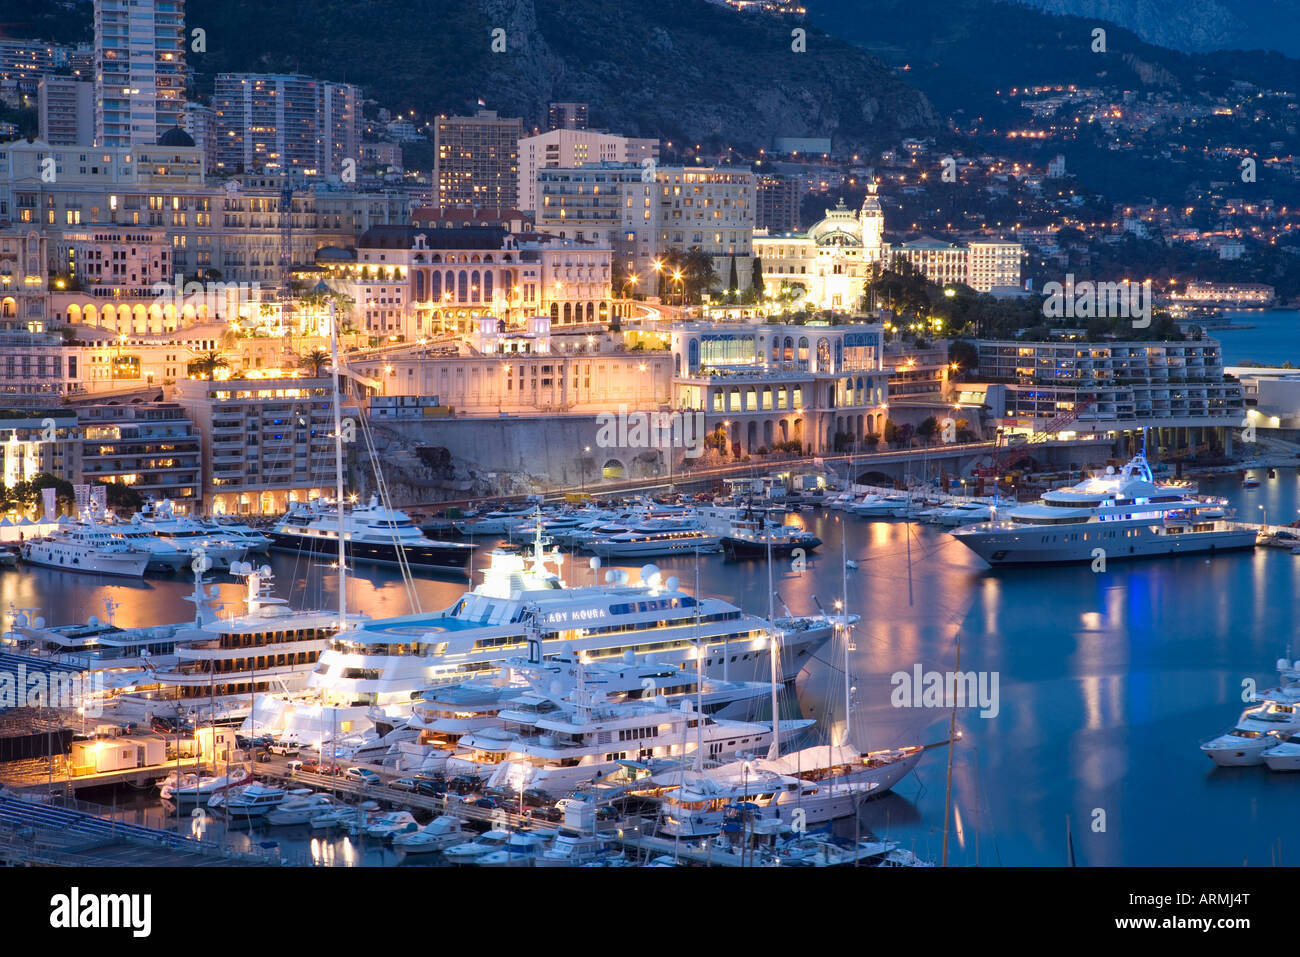 Monte Carlo, Monaco, Cote d'Azur, Méditerranée, Europe Photo Stock